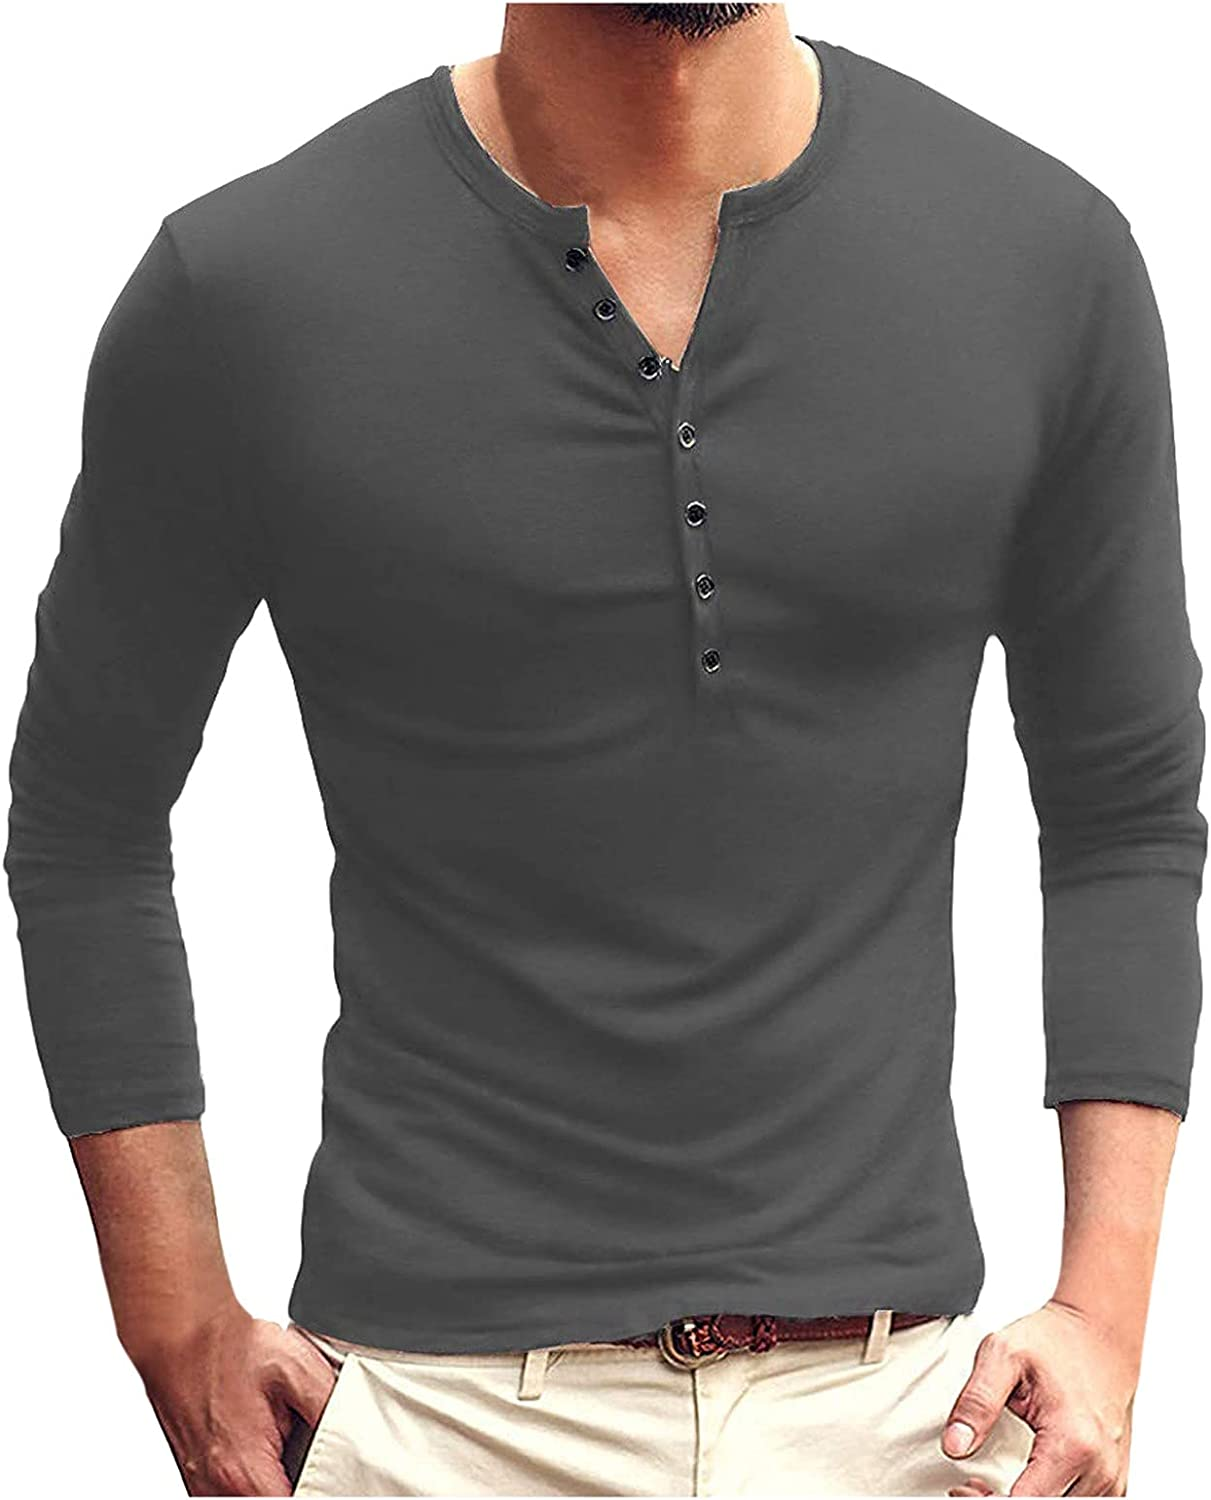 WOCACHI Basic Tshirts For Mens, Fall Button-Up Henley Long Sleeve Round Neck Tee Tops Casual Solid Slim Fit T-Shirt